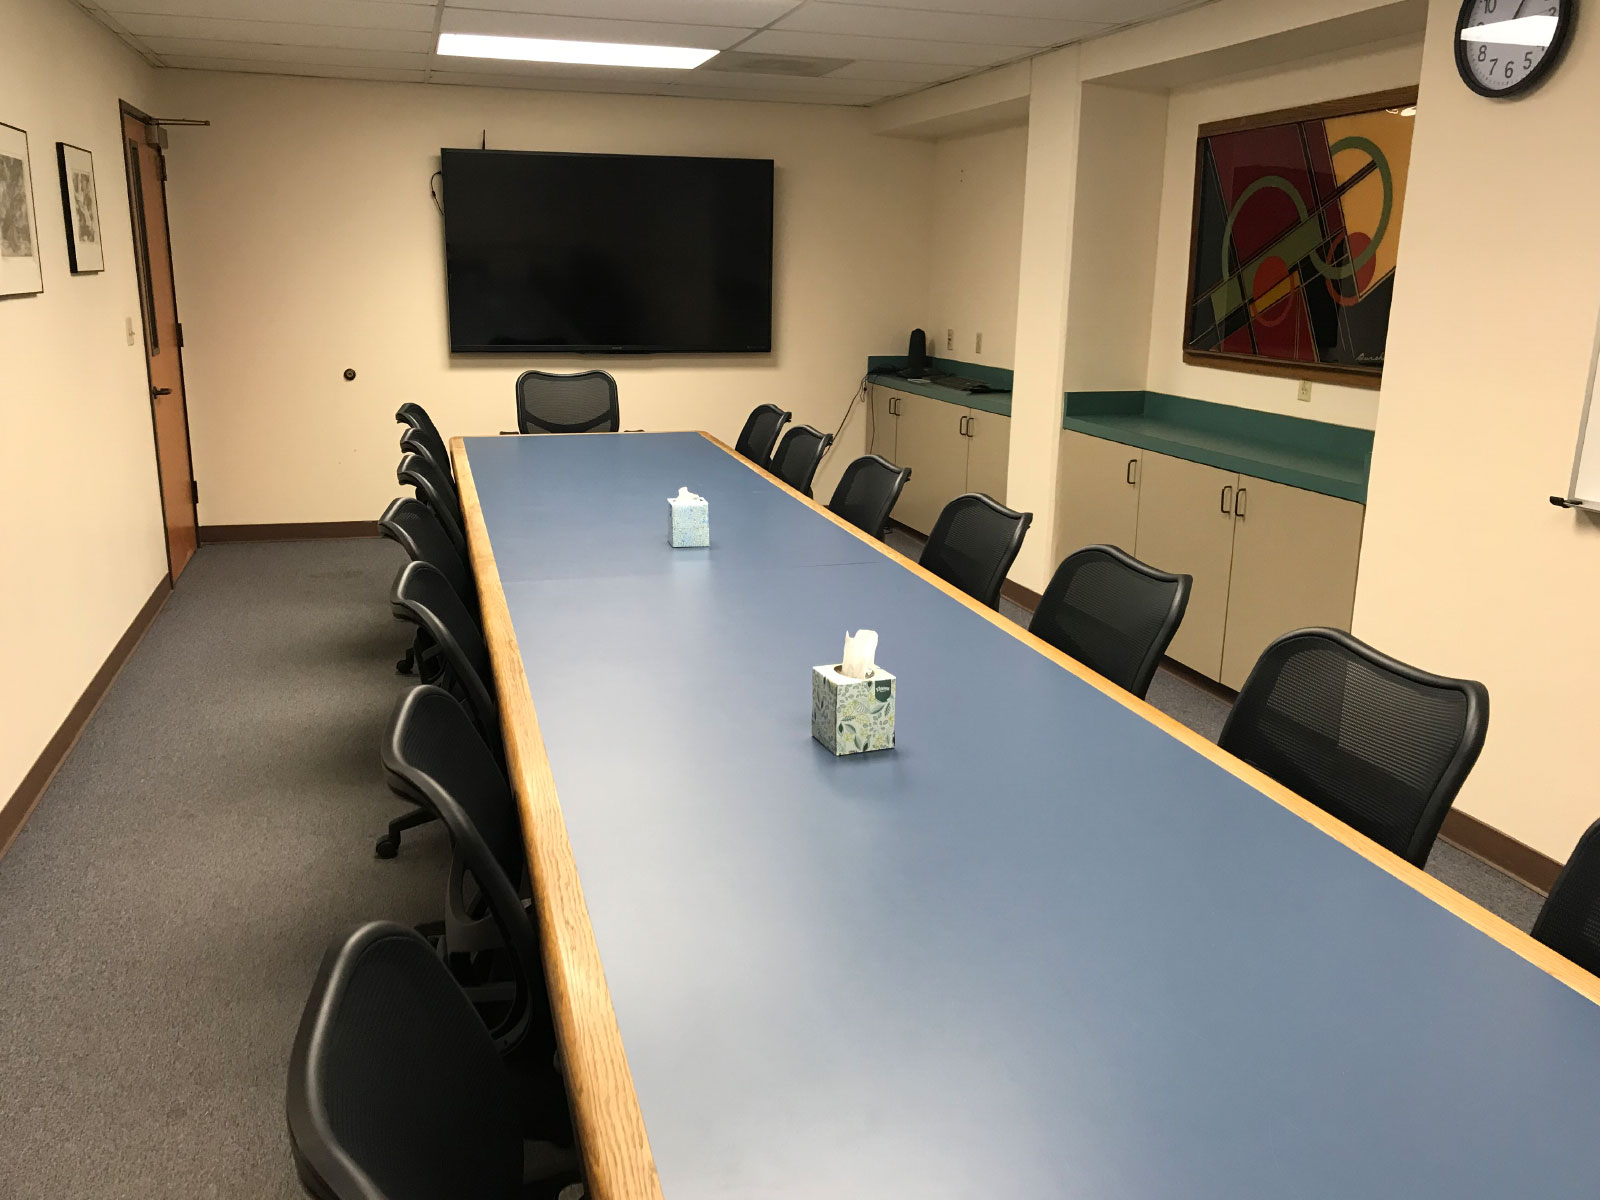 A long, blue table with several chairs in a conference room with a TV display on the Oregon City campus